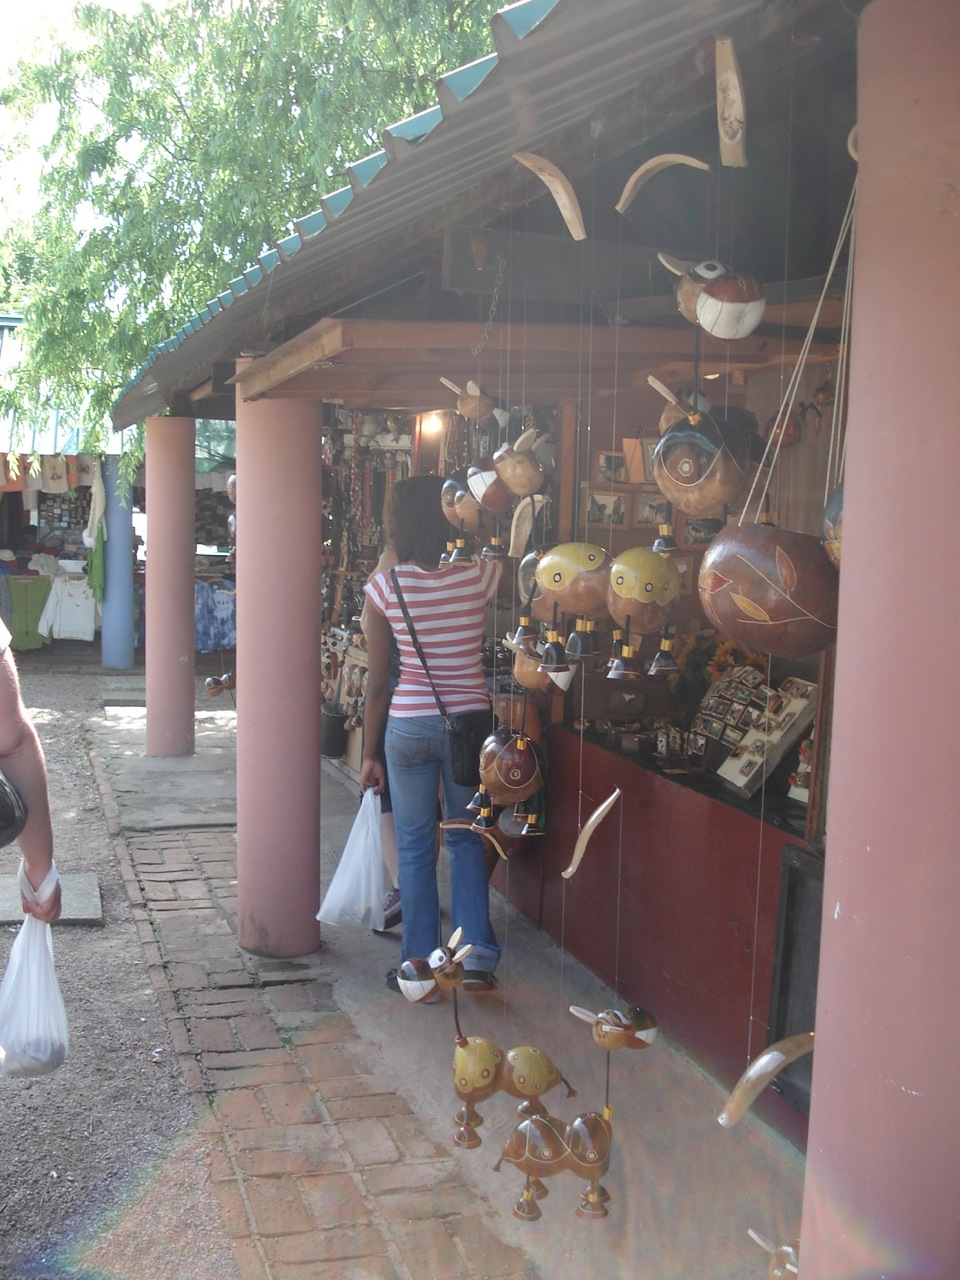 Artisan fairs and handmade treasures while traveling abroad.